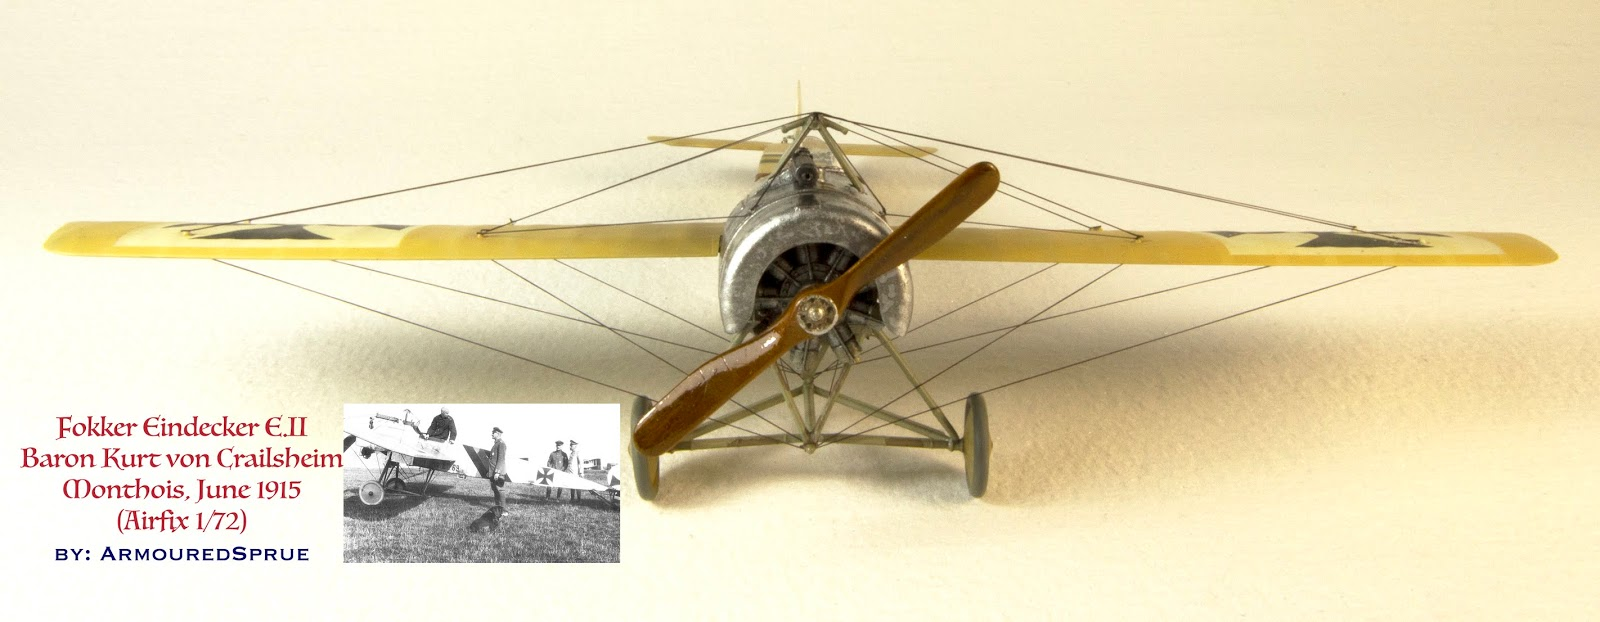 Fokker E II (Airfix 1/72) - Ready for Inspection - Aircraft